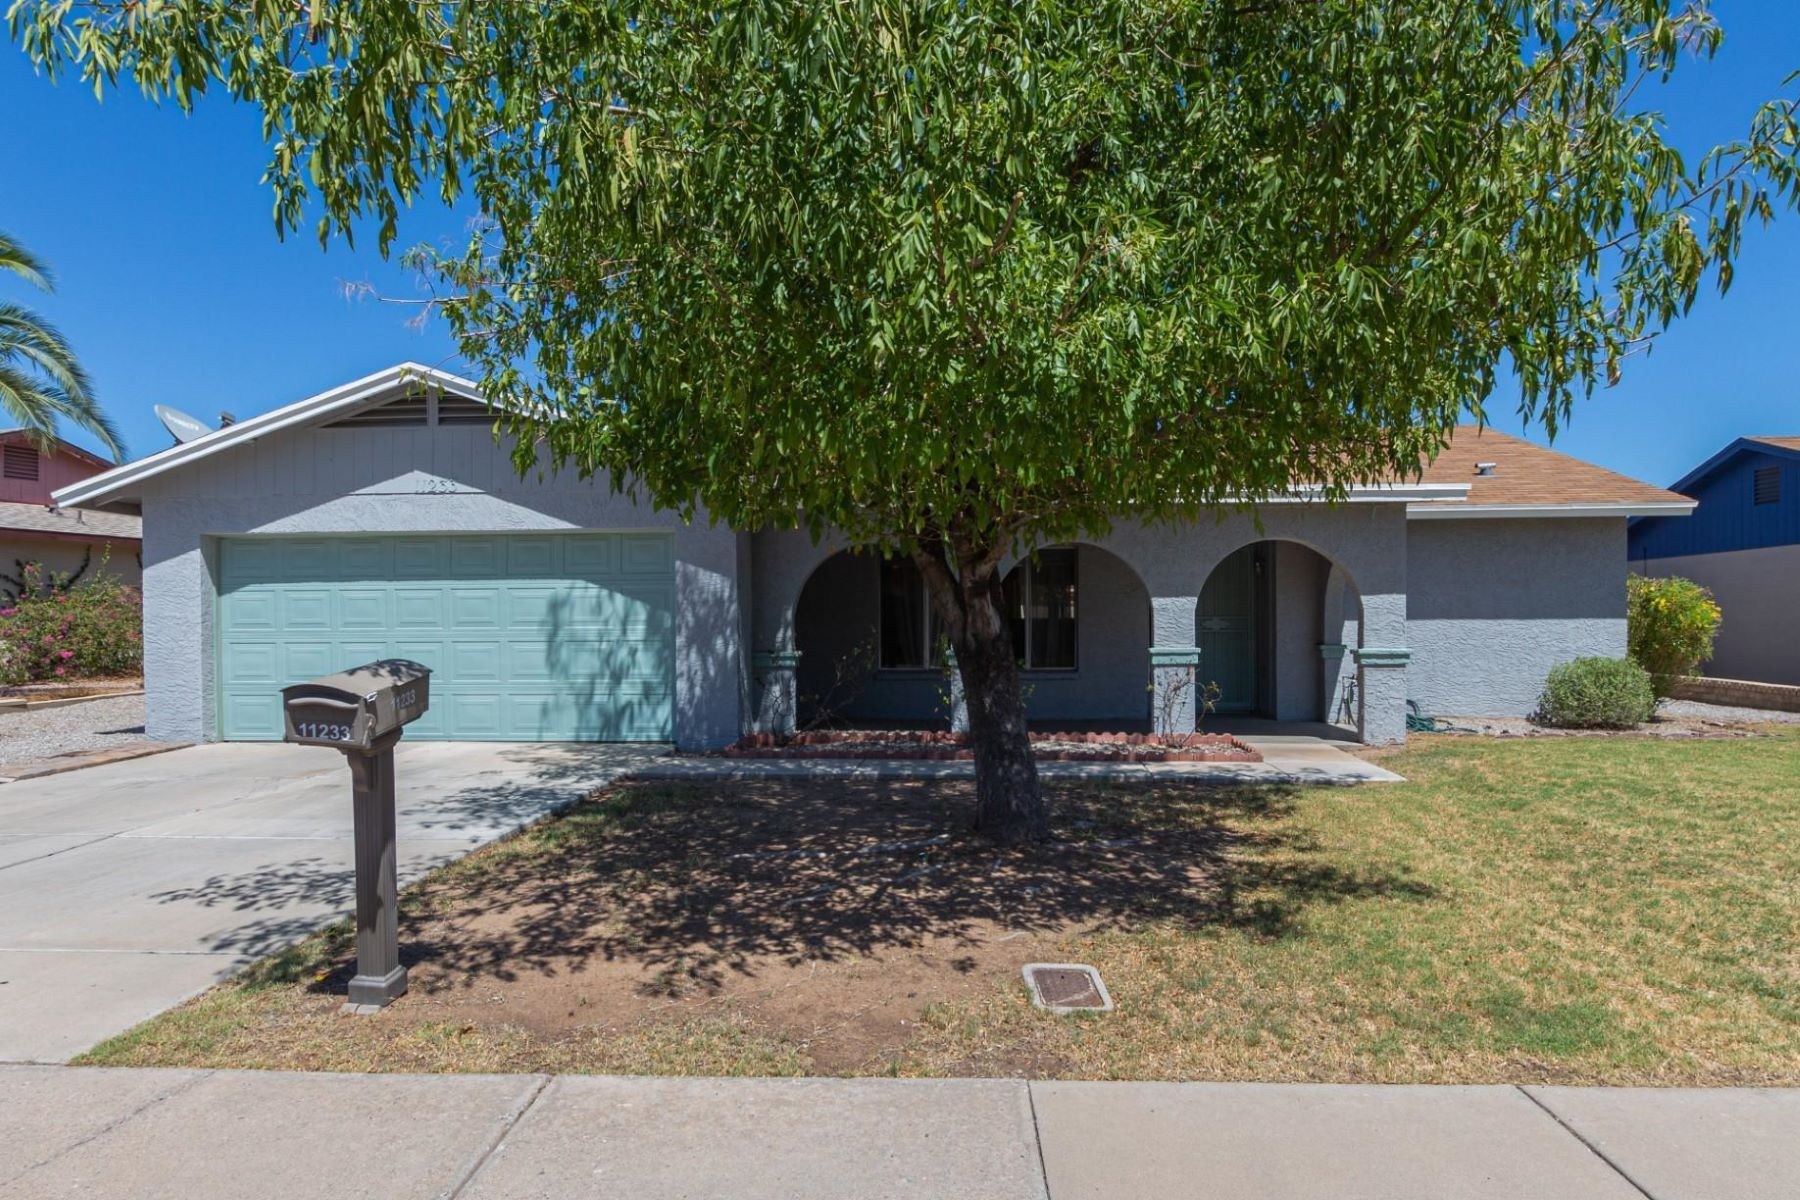 Single Family Homes for Active at Charming Energy Efficient Block Home 11233 N 58TH AVE Glendale, Arizona 85304 United States